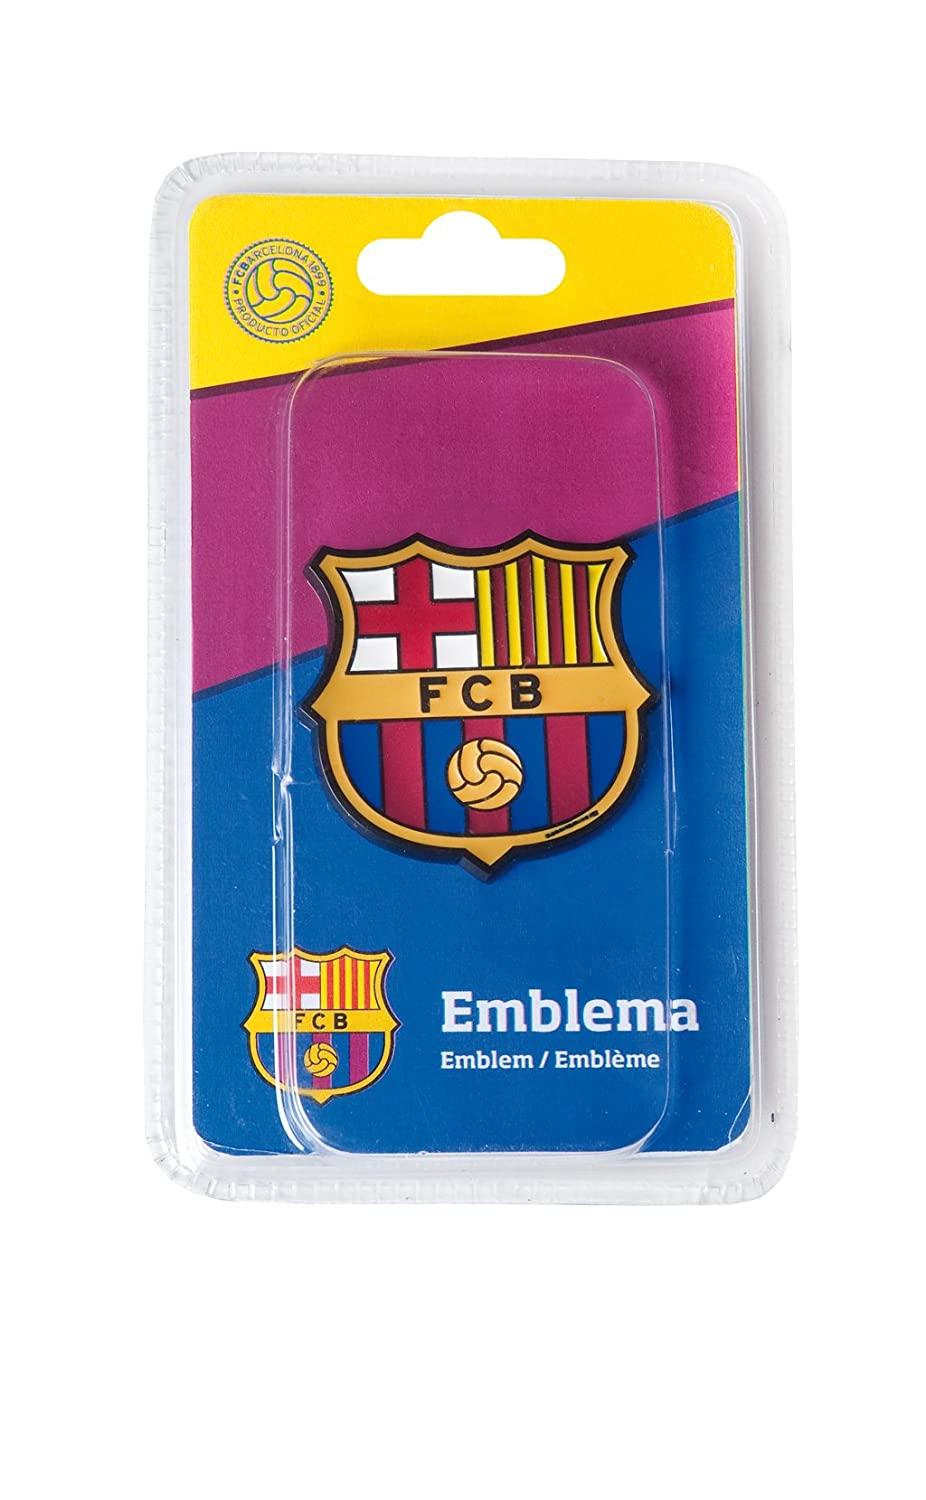 CAR FCB1935 Futbol Club Barcelona Original Emblem